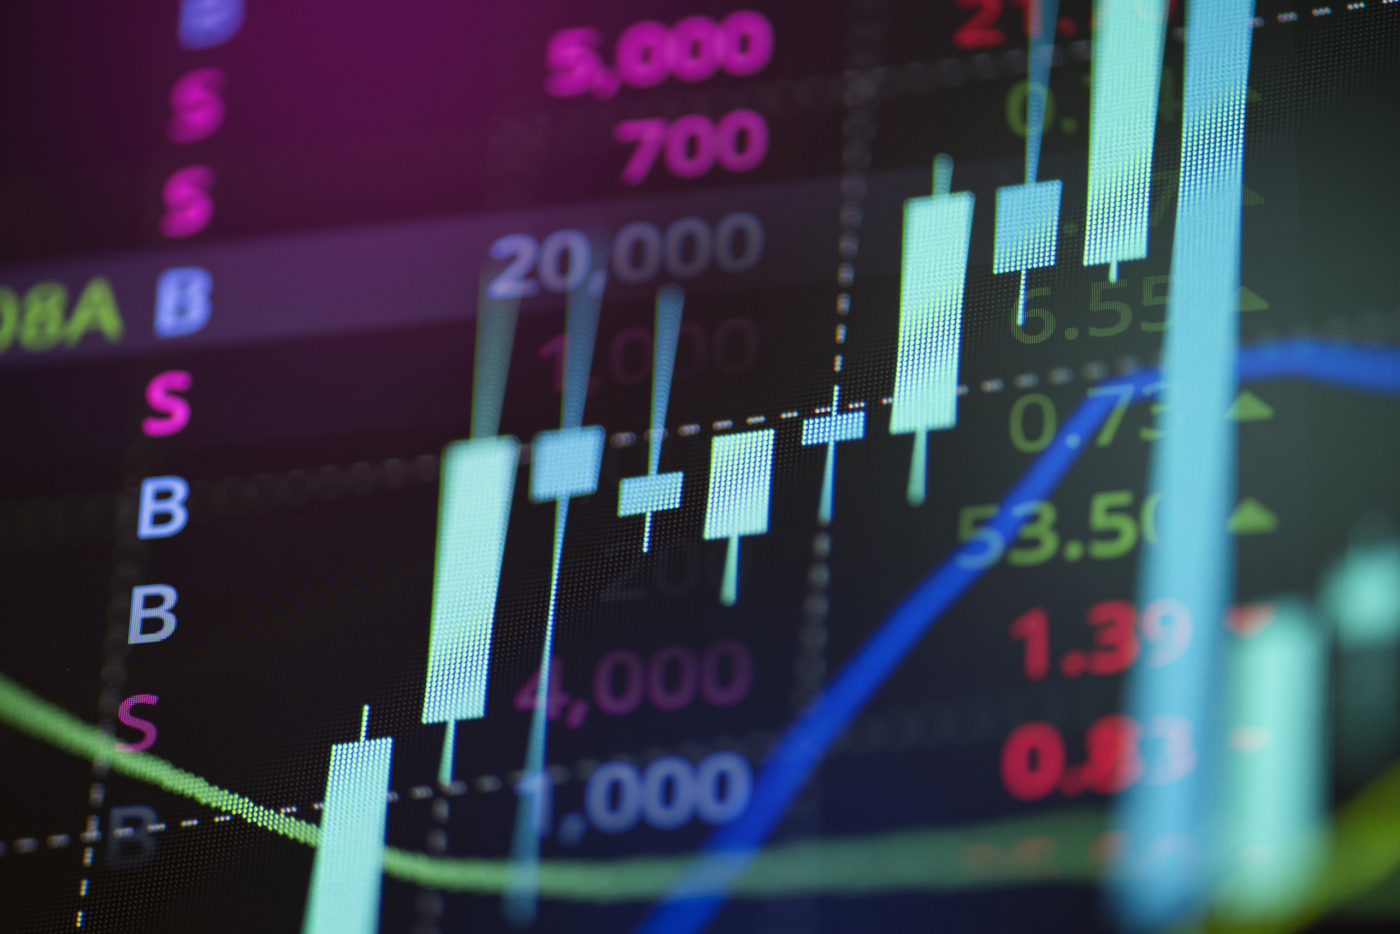 Stock market tickers scrolling on stock price chart